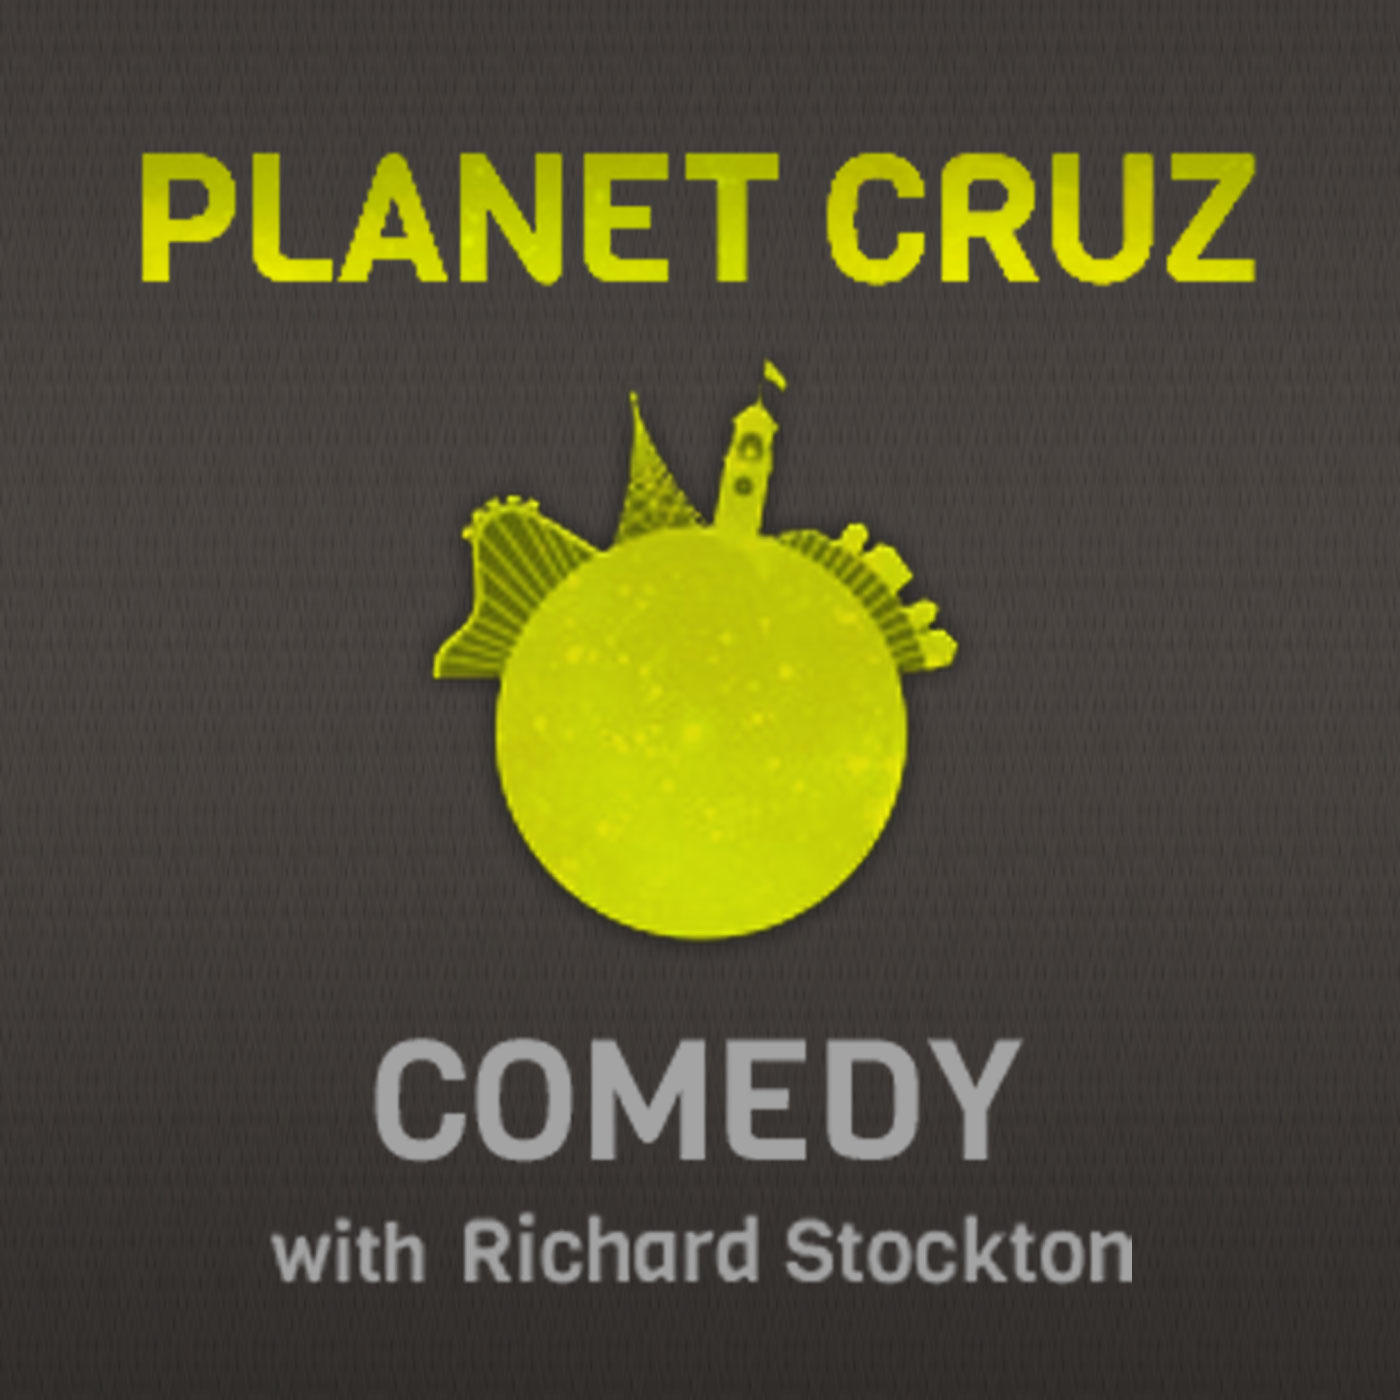 Planet Cruz Comedy Podcasts